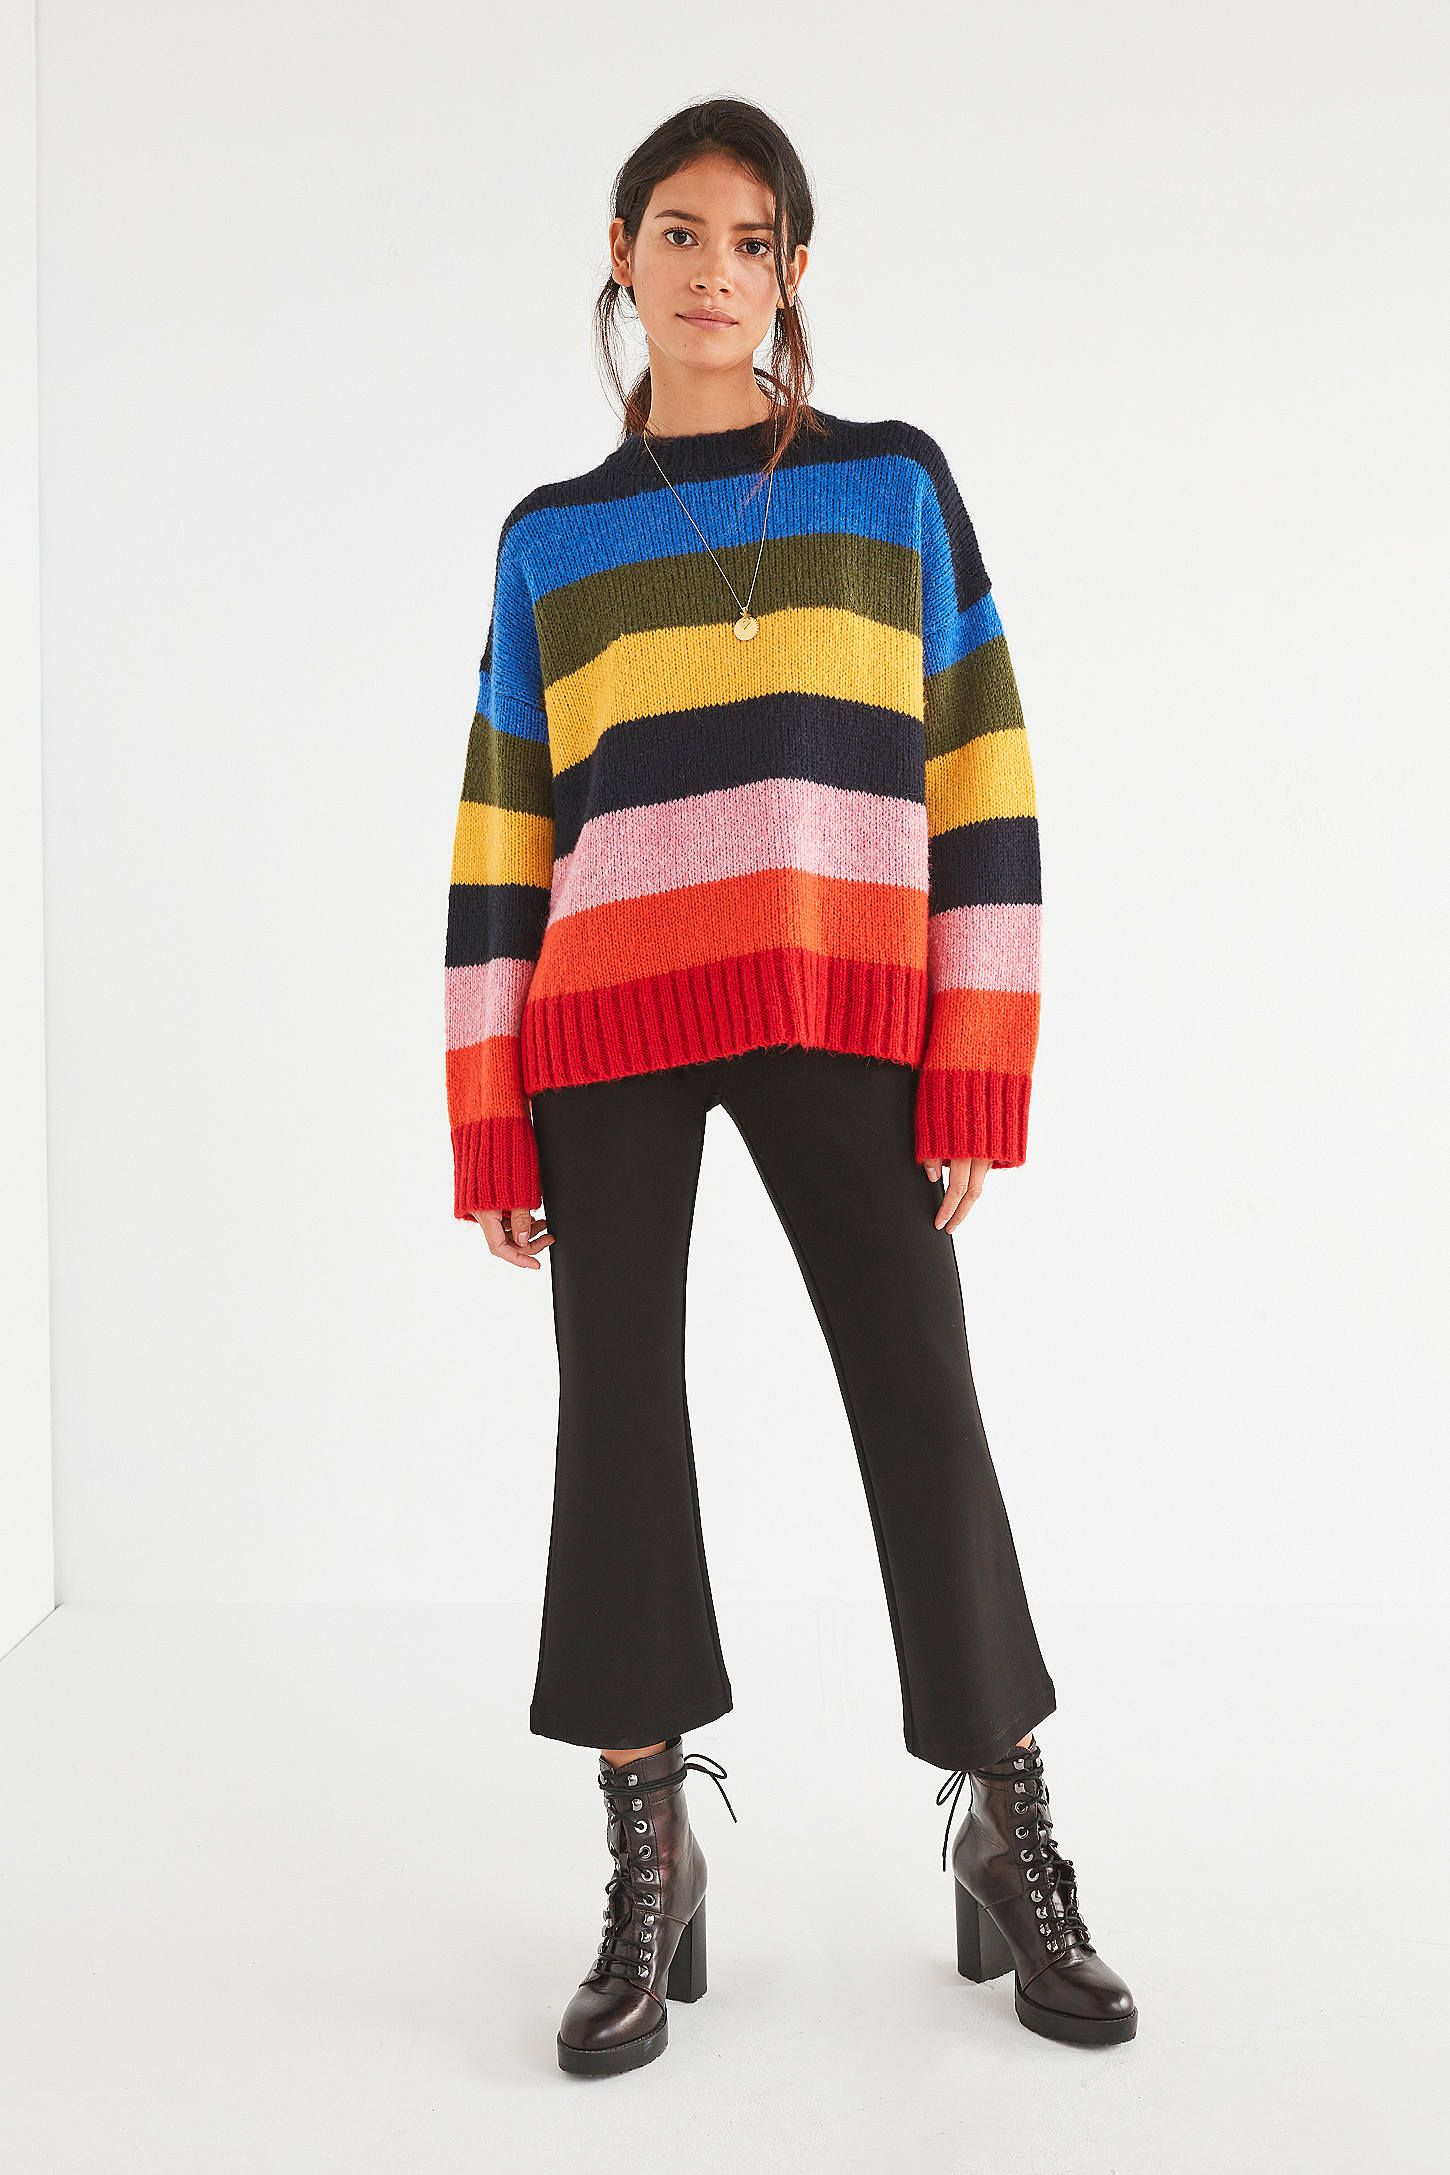 c860843a96 Shop UO Kari Oversized Striped Sweater at Urban Outfitters today. We carry  all the latest styles